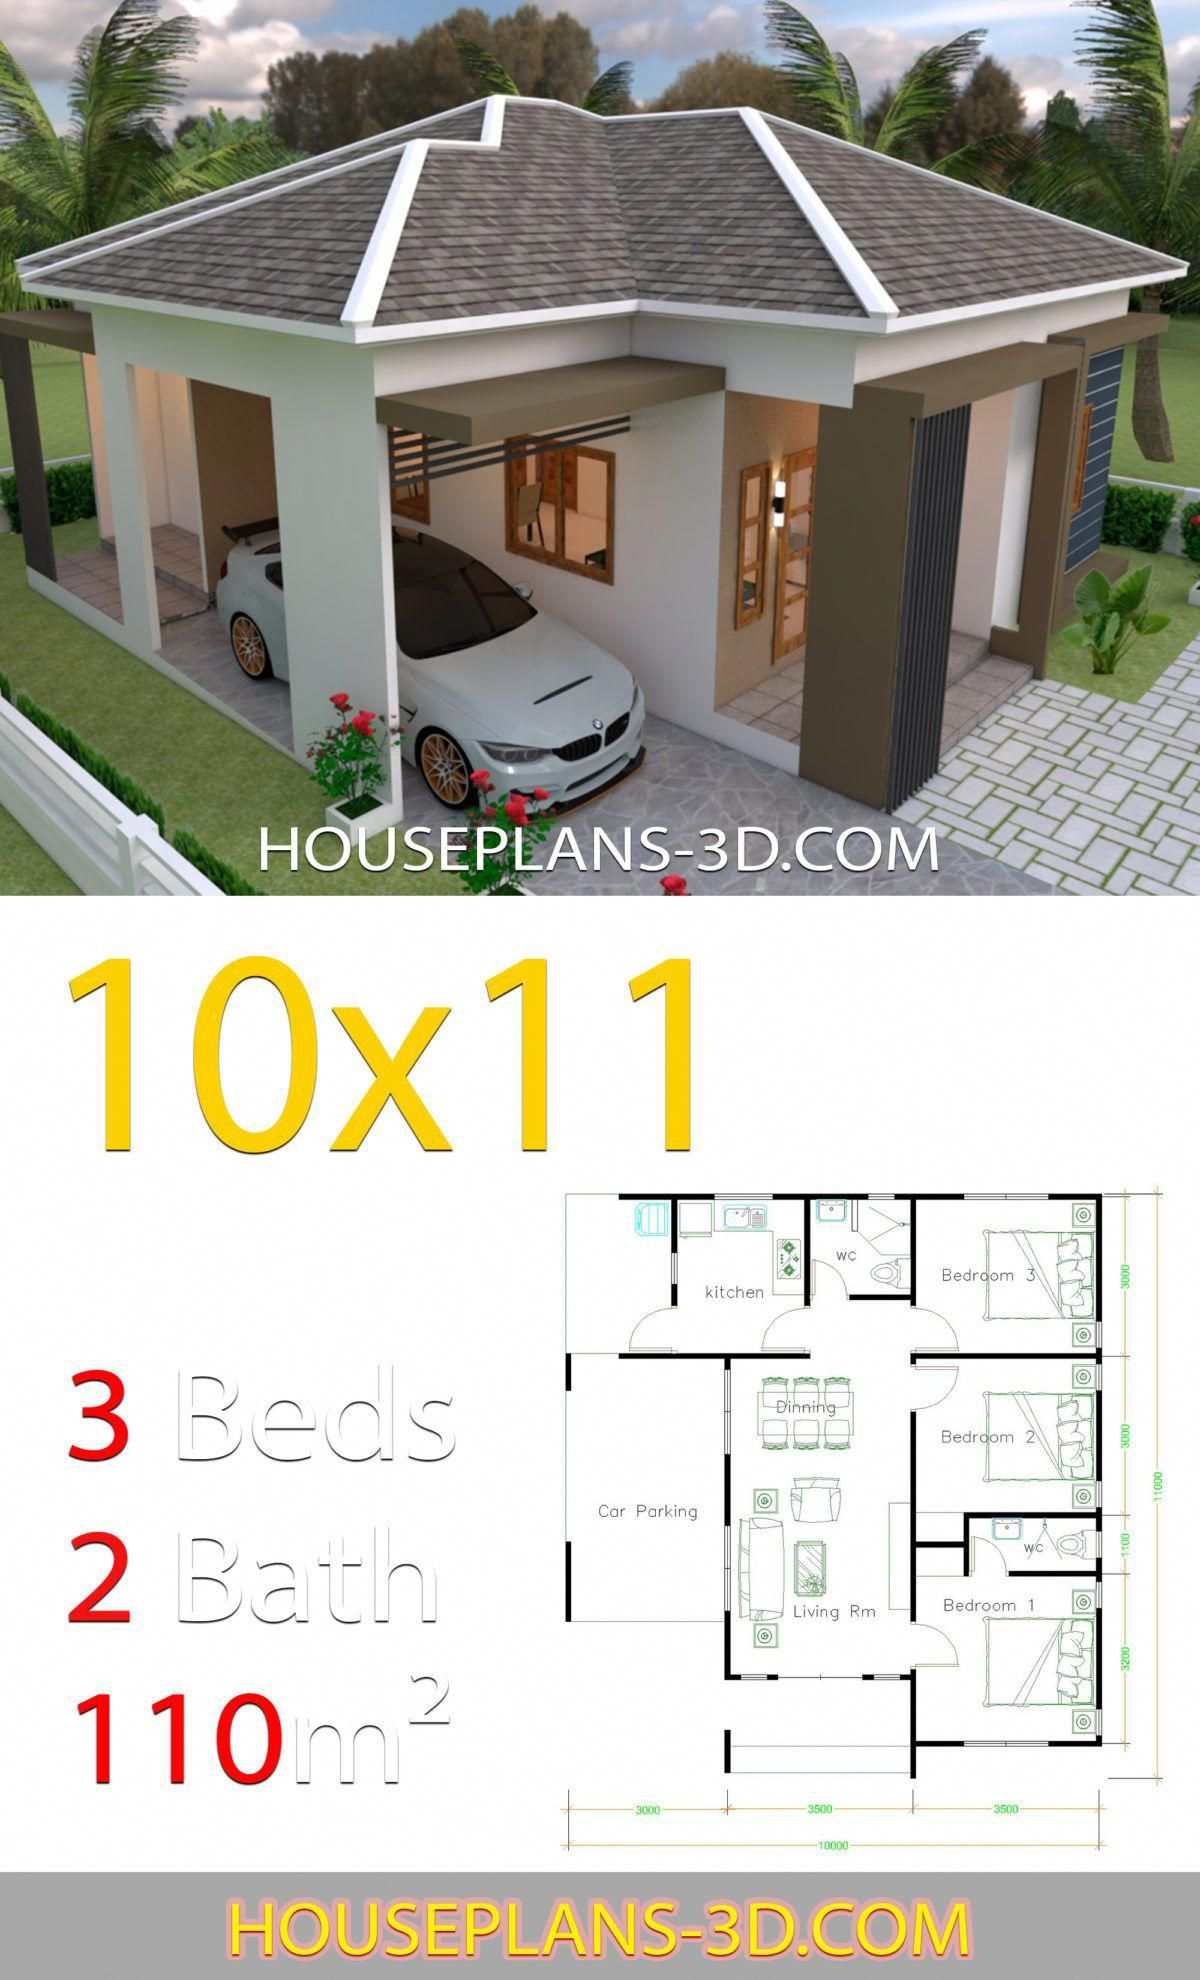 House Design 10x11 With 3 Bedrooms Hip Tiles House Plans 3d Smallhousedecorating In 2020 Simple House Design House Construction Plan Simple House